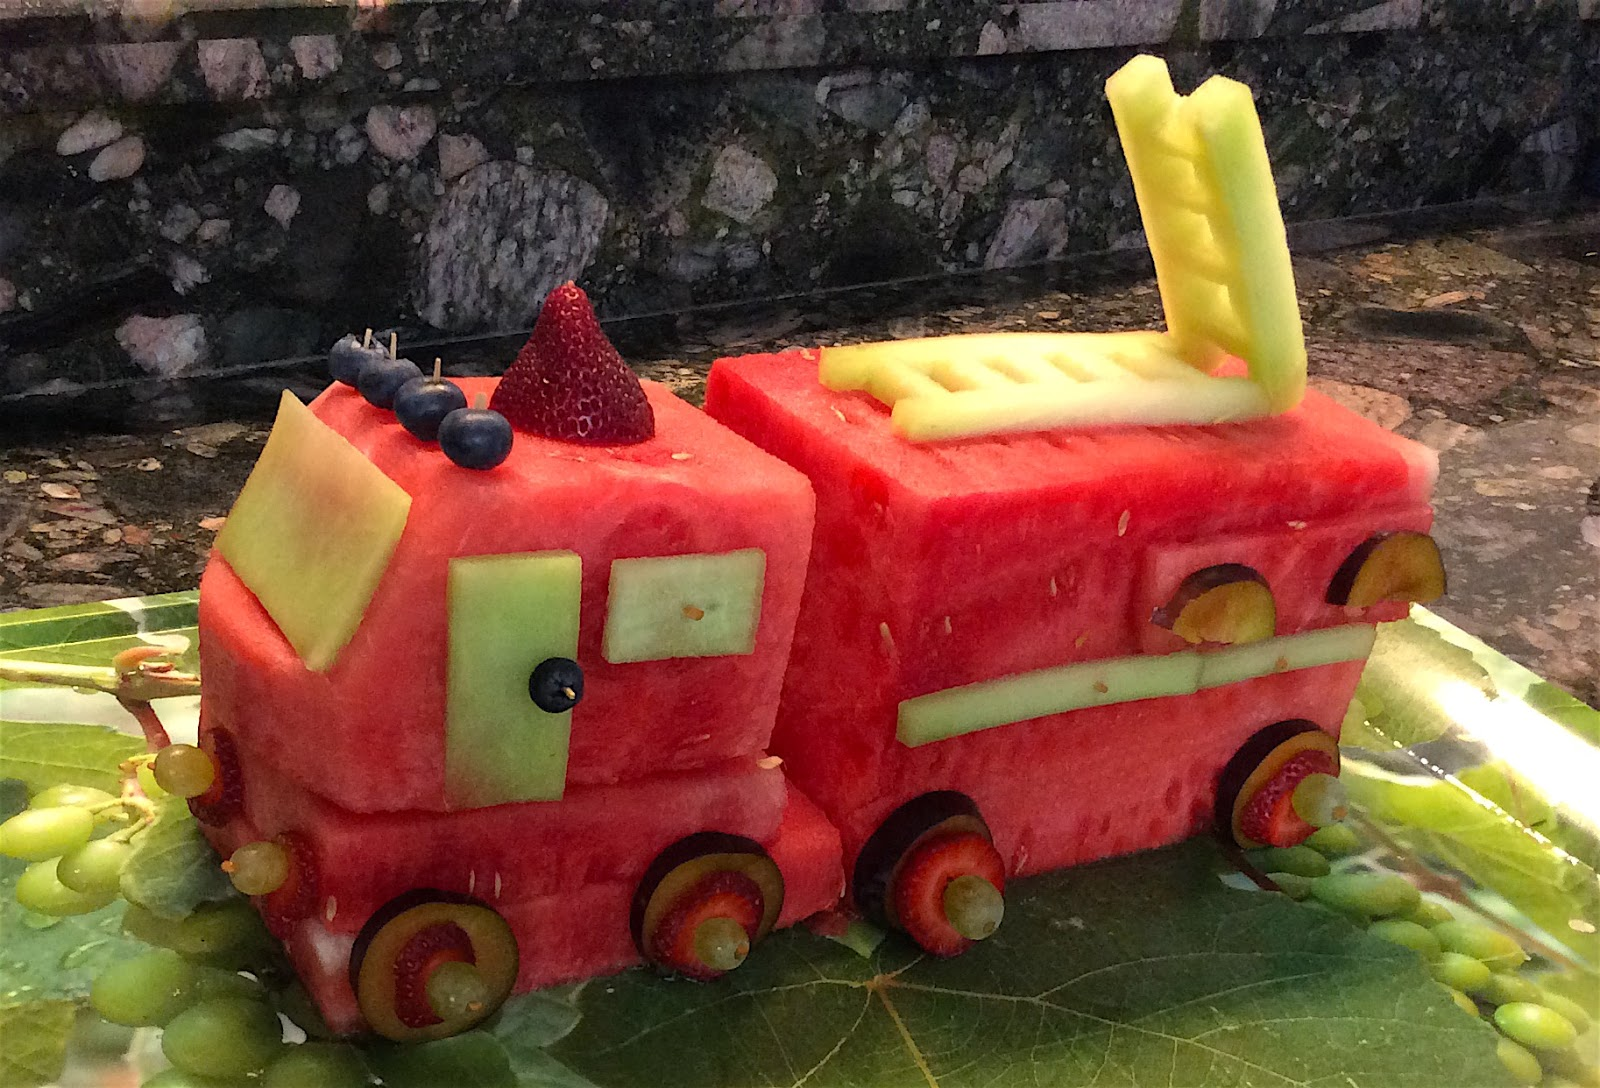 Something Ive Wanted To Do For A Few Years Now Is Make Watermelon Truck Or Train The Occasion Of Young Sirs 3rd Birthday Seemed Like Good Time